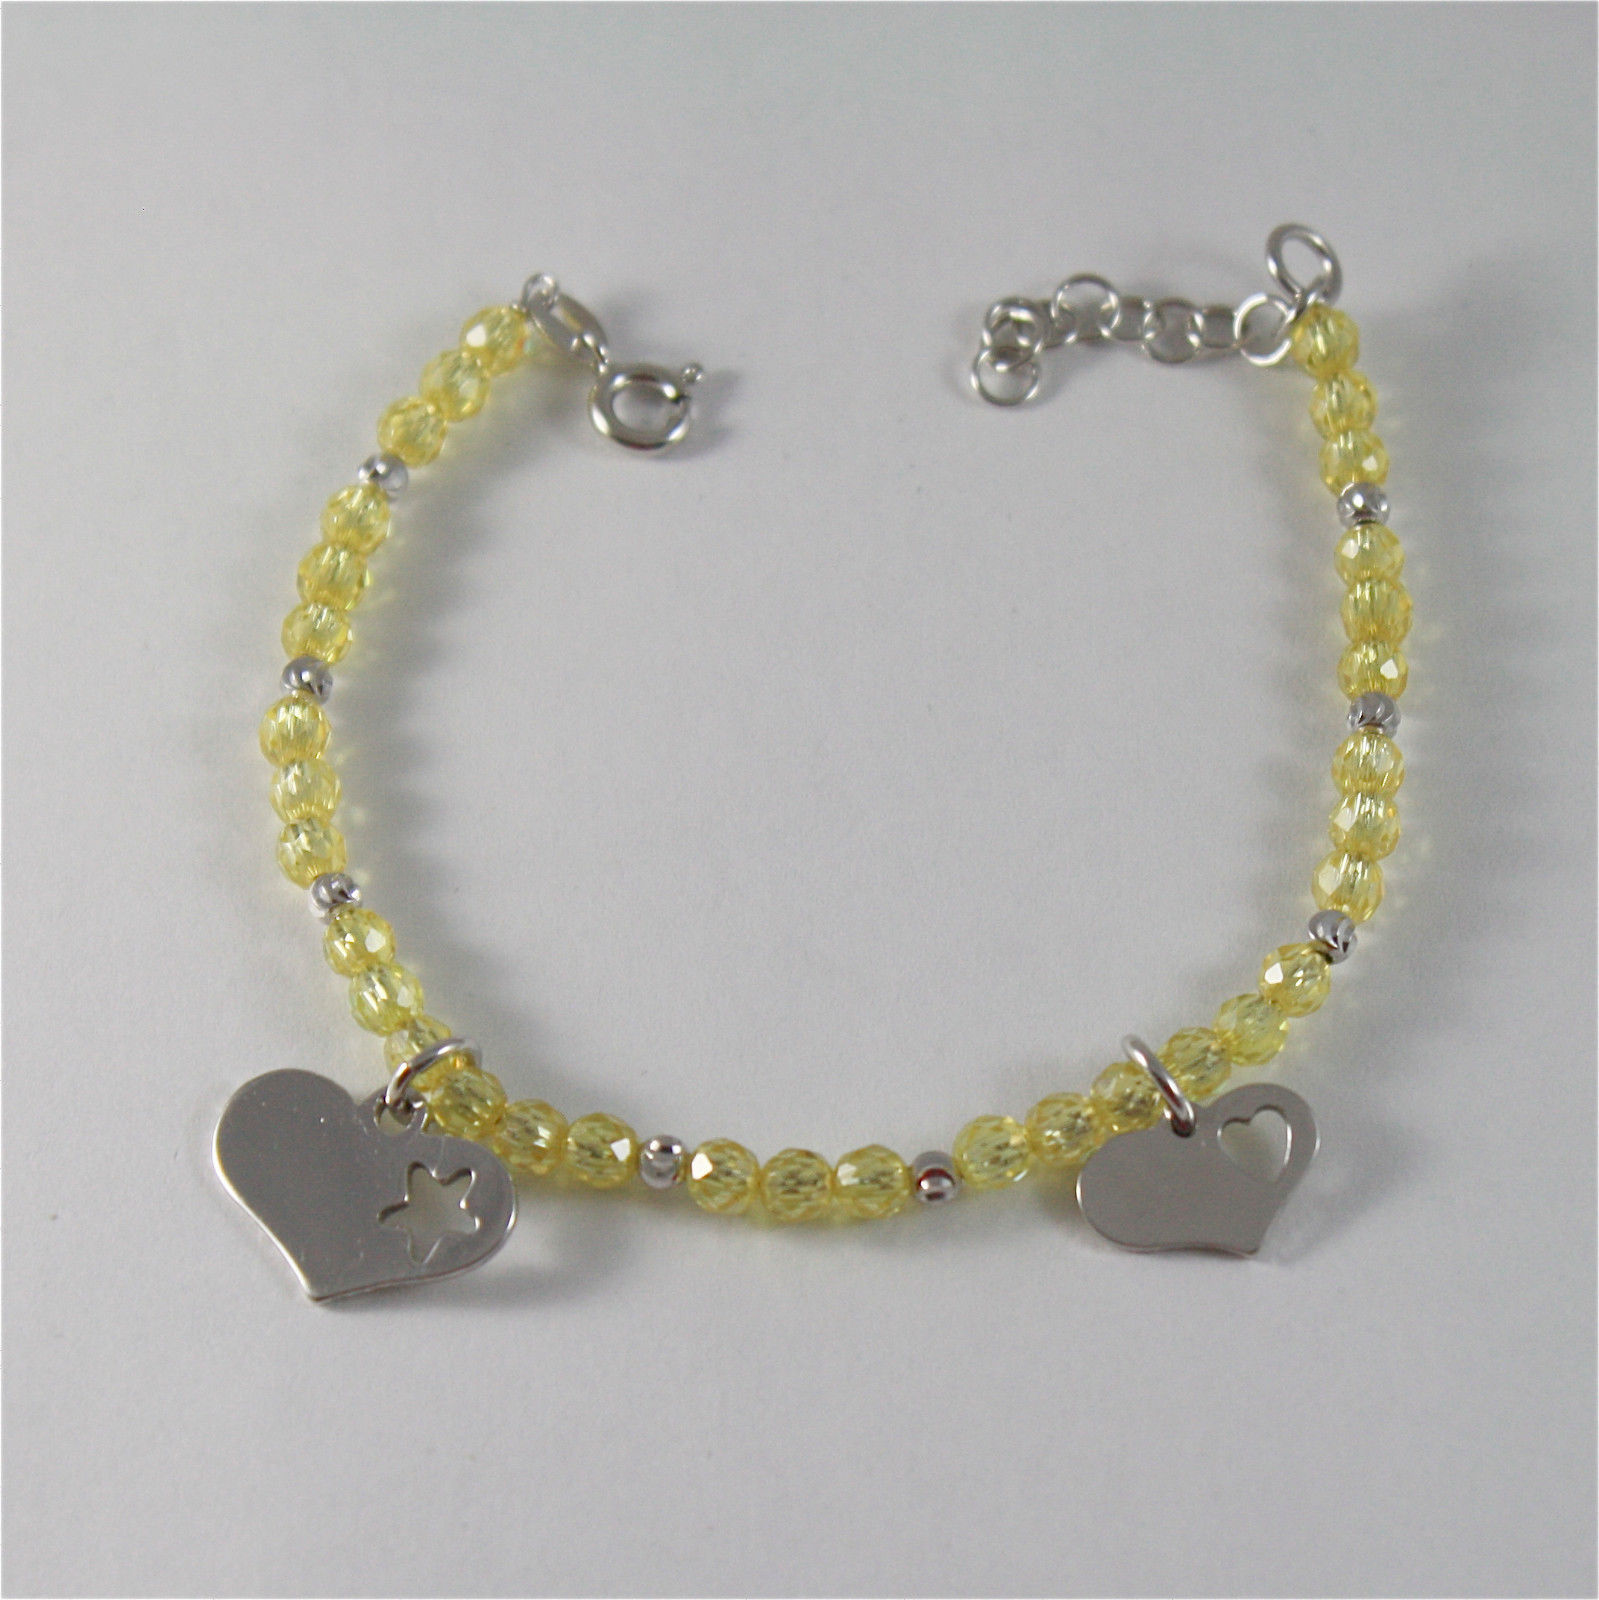 925 SILVER BRACELET WITH HEARTS & YELLOW CUBIC ZIRCONIA MADE IN ITALY 59,00 USD